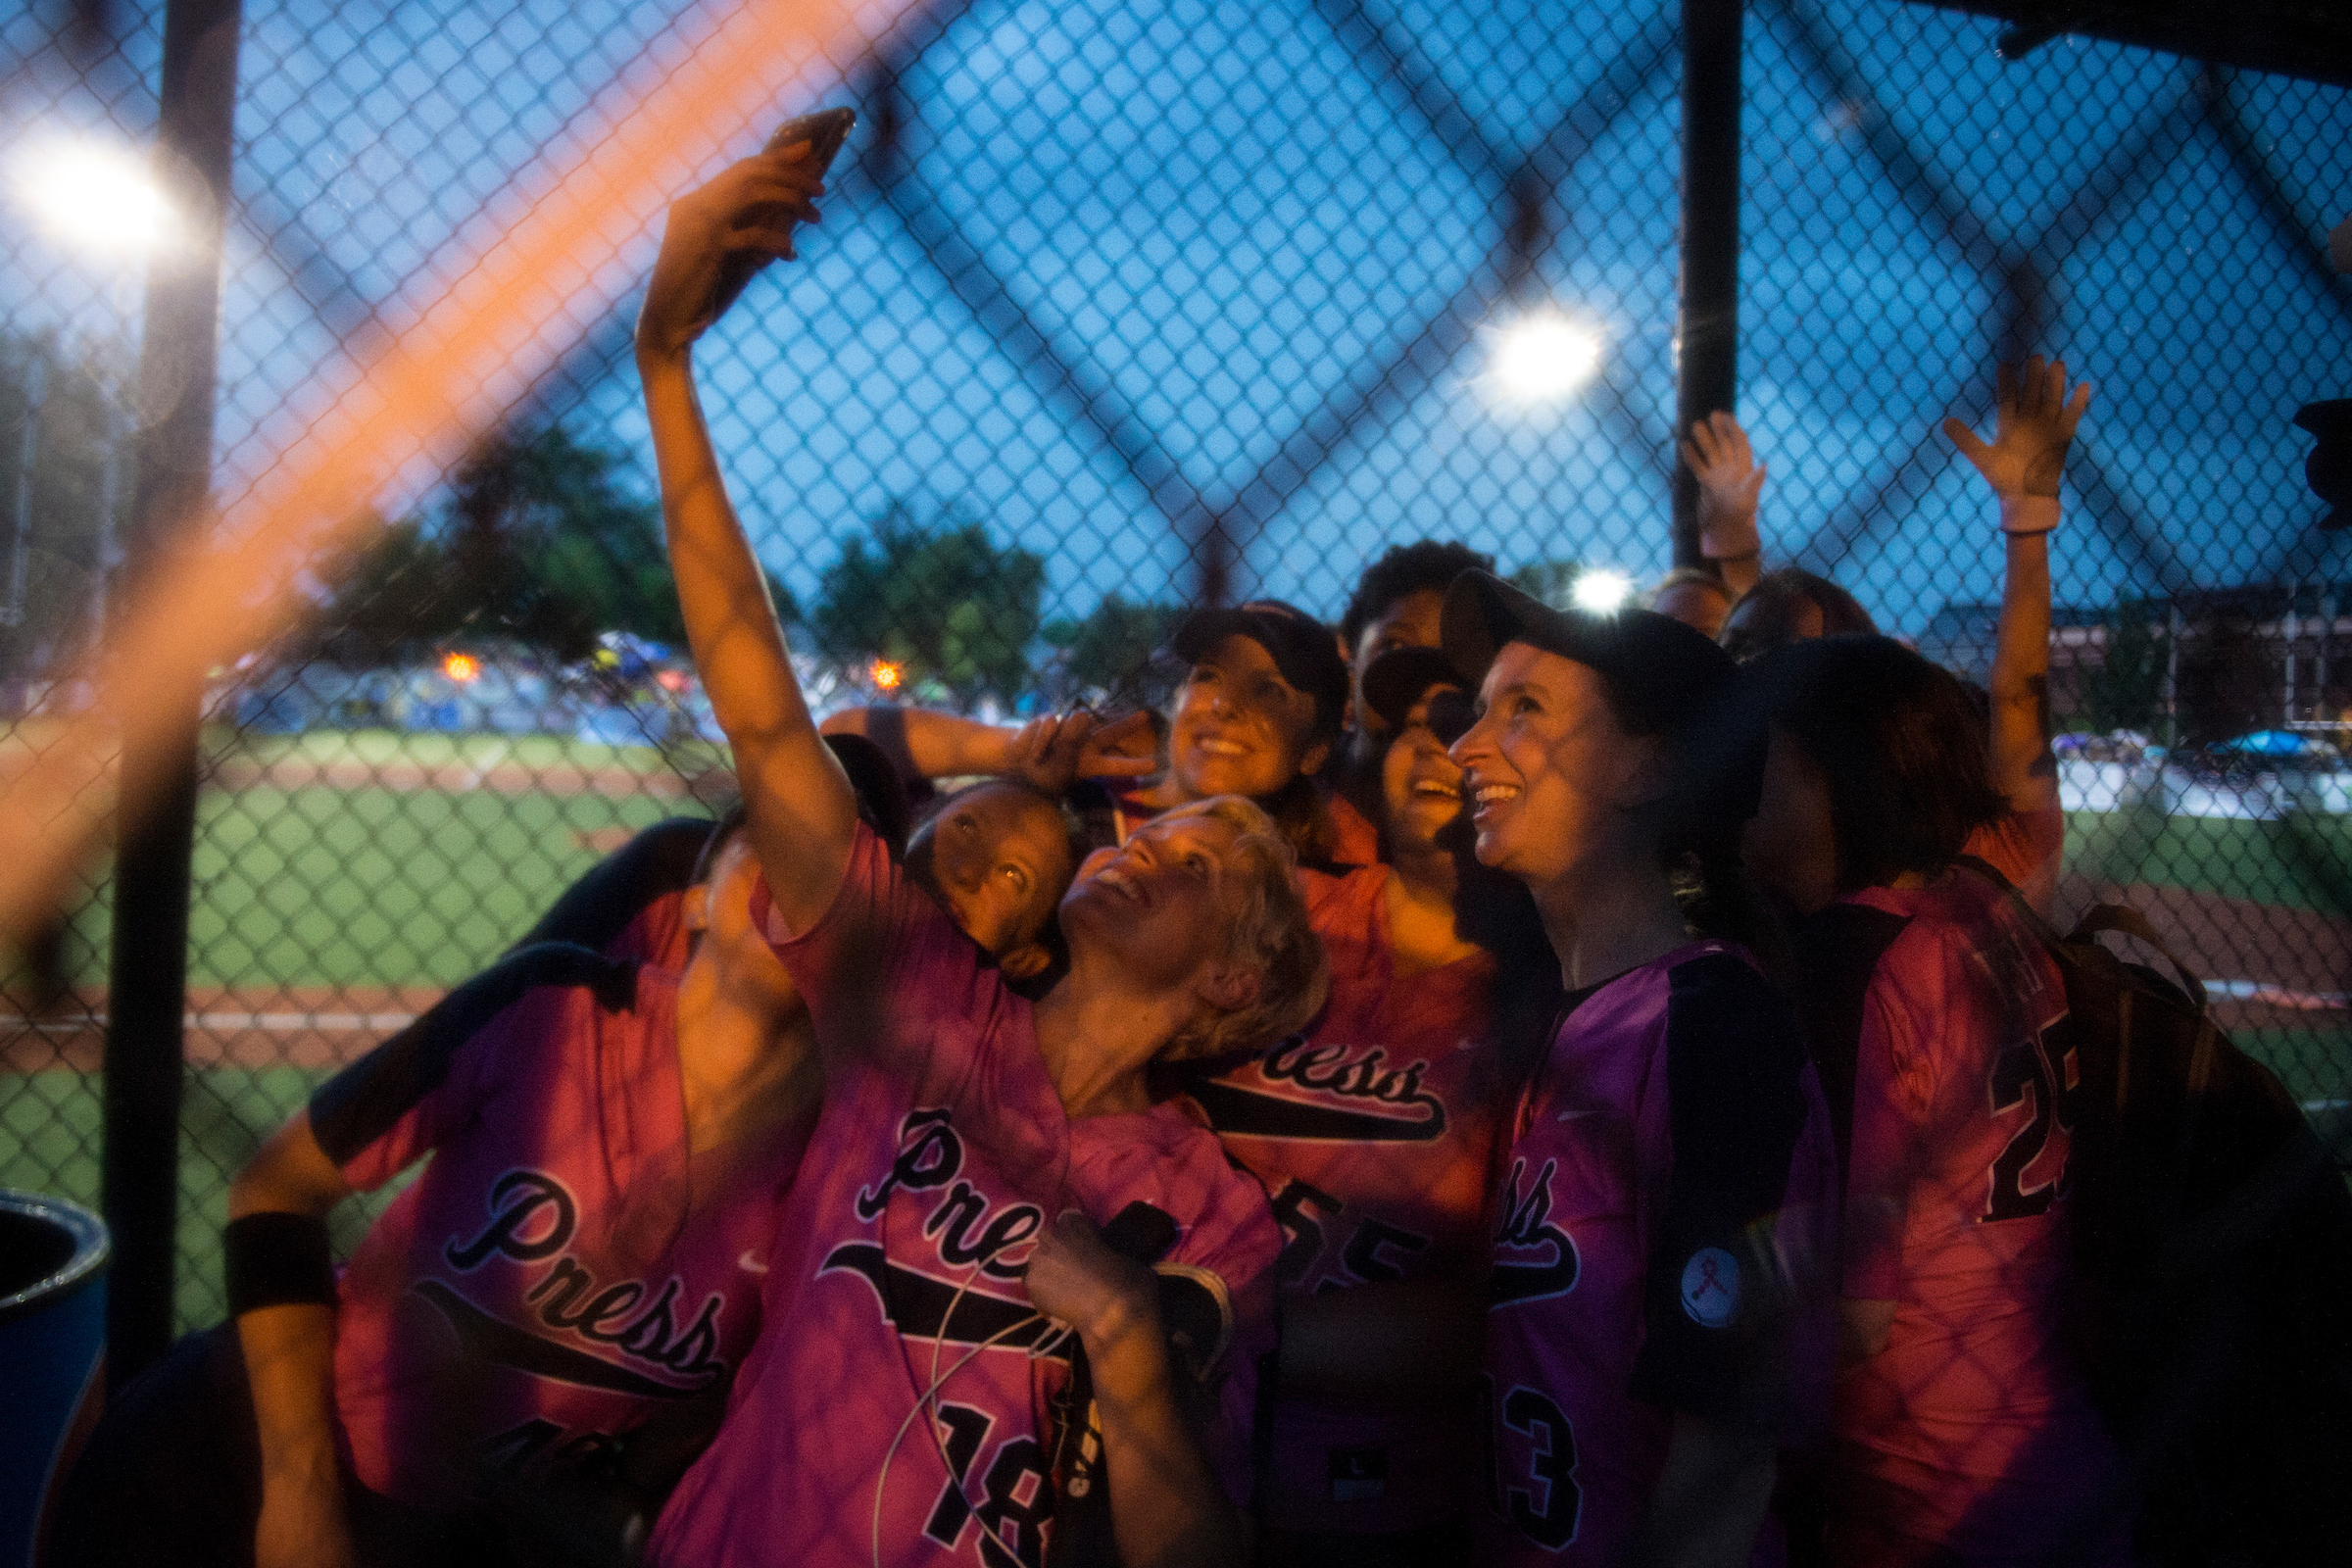 UNITED STATES - June 20: Team Bad News Babes, comprised of members of the press, take a selfie in their dugout after winning the Congressional Women's Softball Game at the Watkins Recreation Center in Capitol Hill Wednesday June 20, 2018. (Photo By Sarah Silbiger/CQ Roll Call)